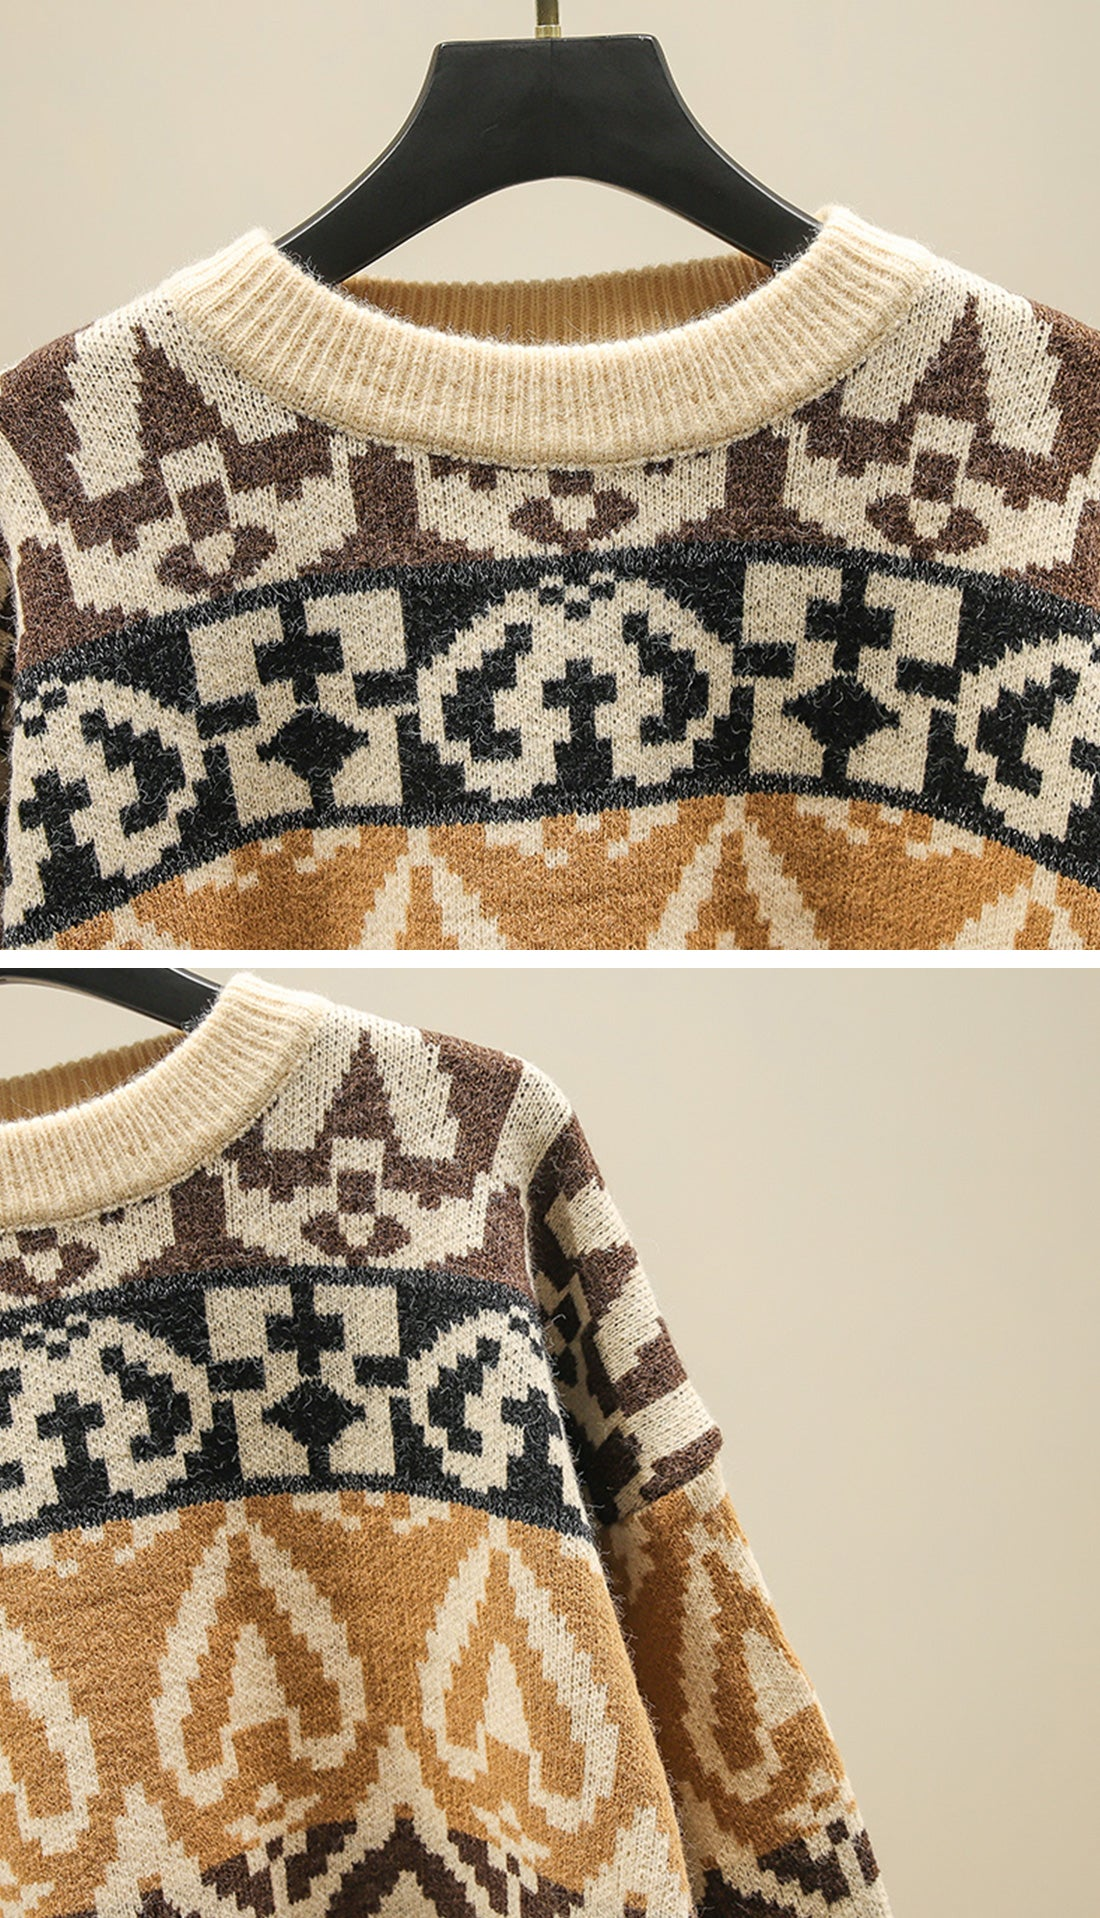 The Travelers Sweaters Details 1